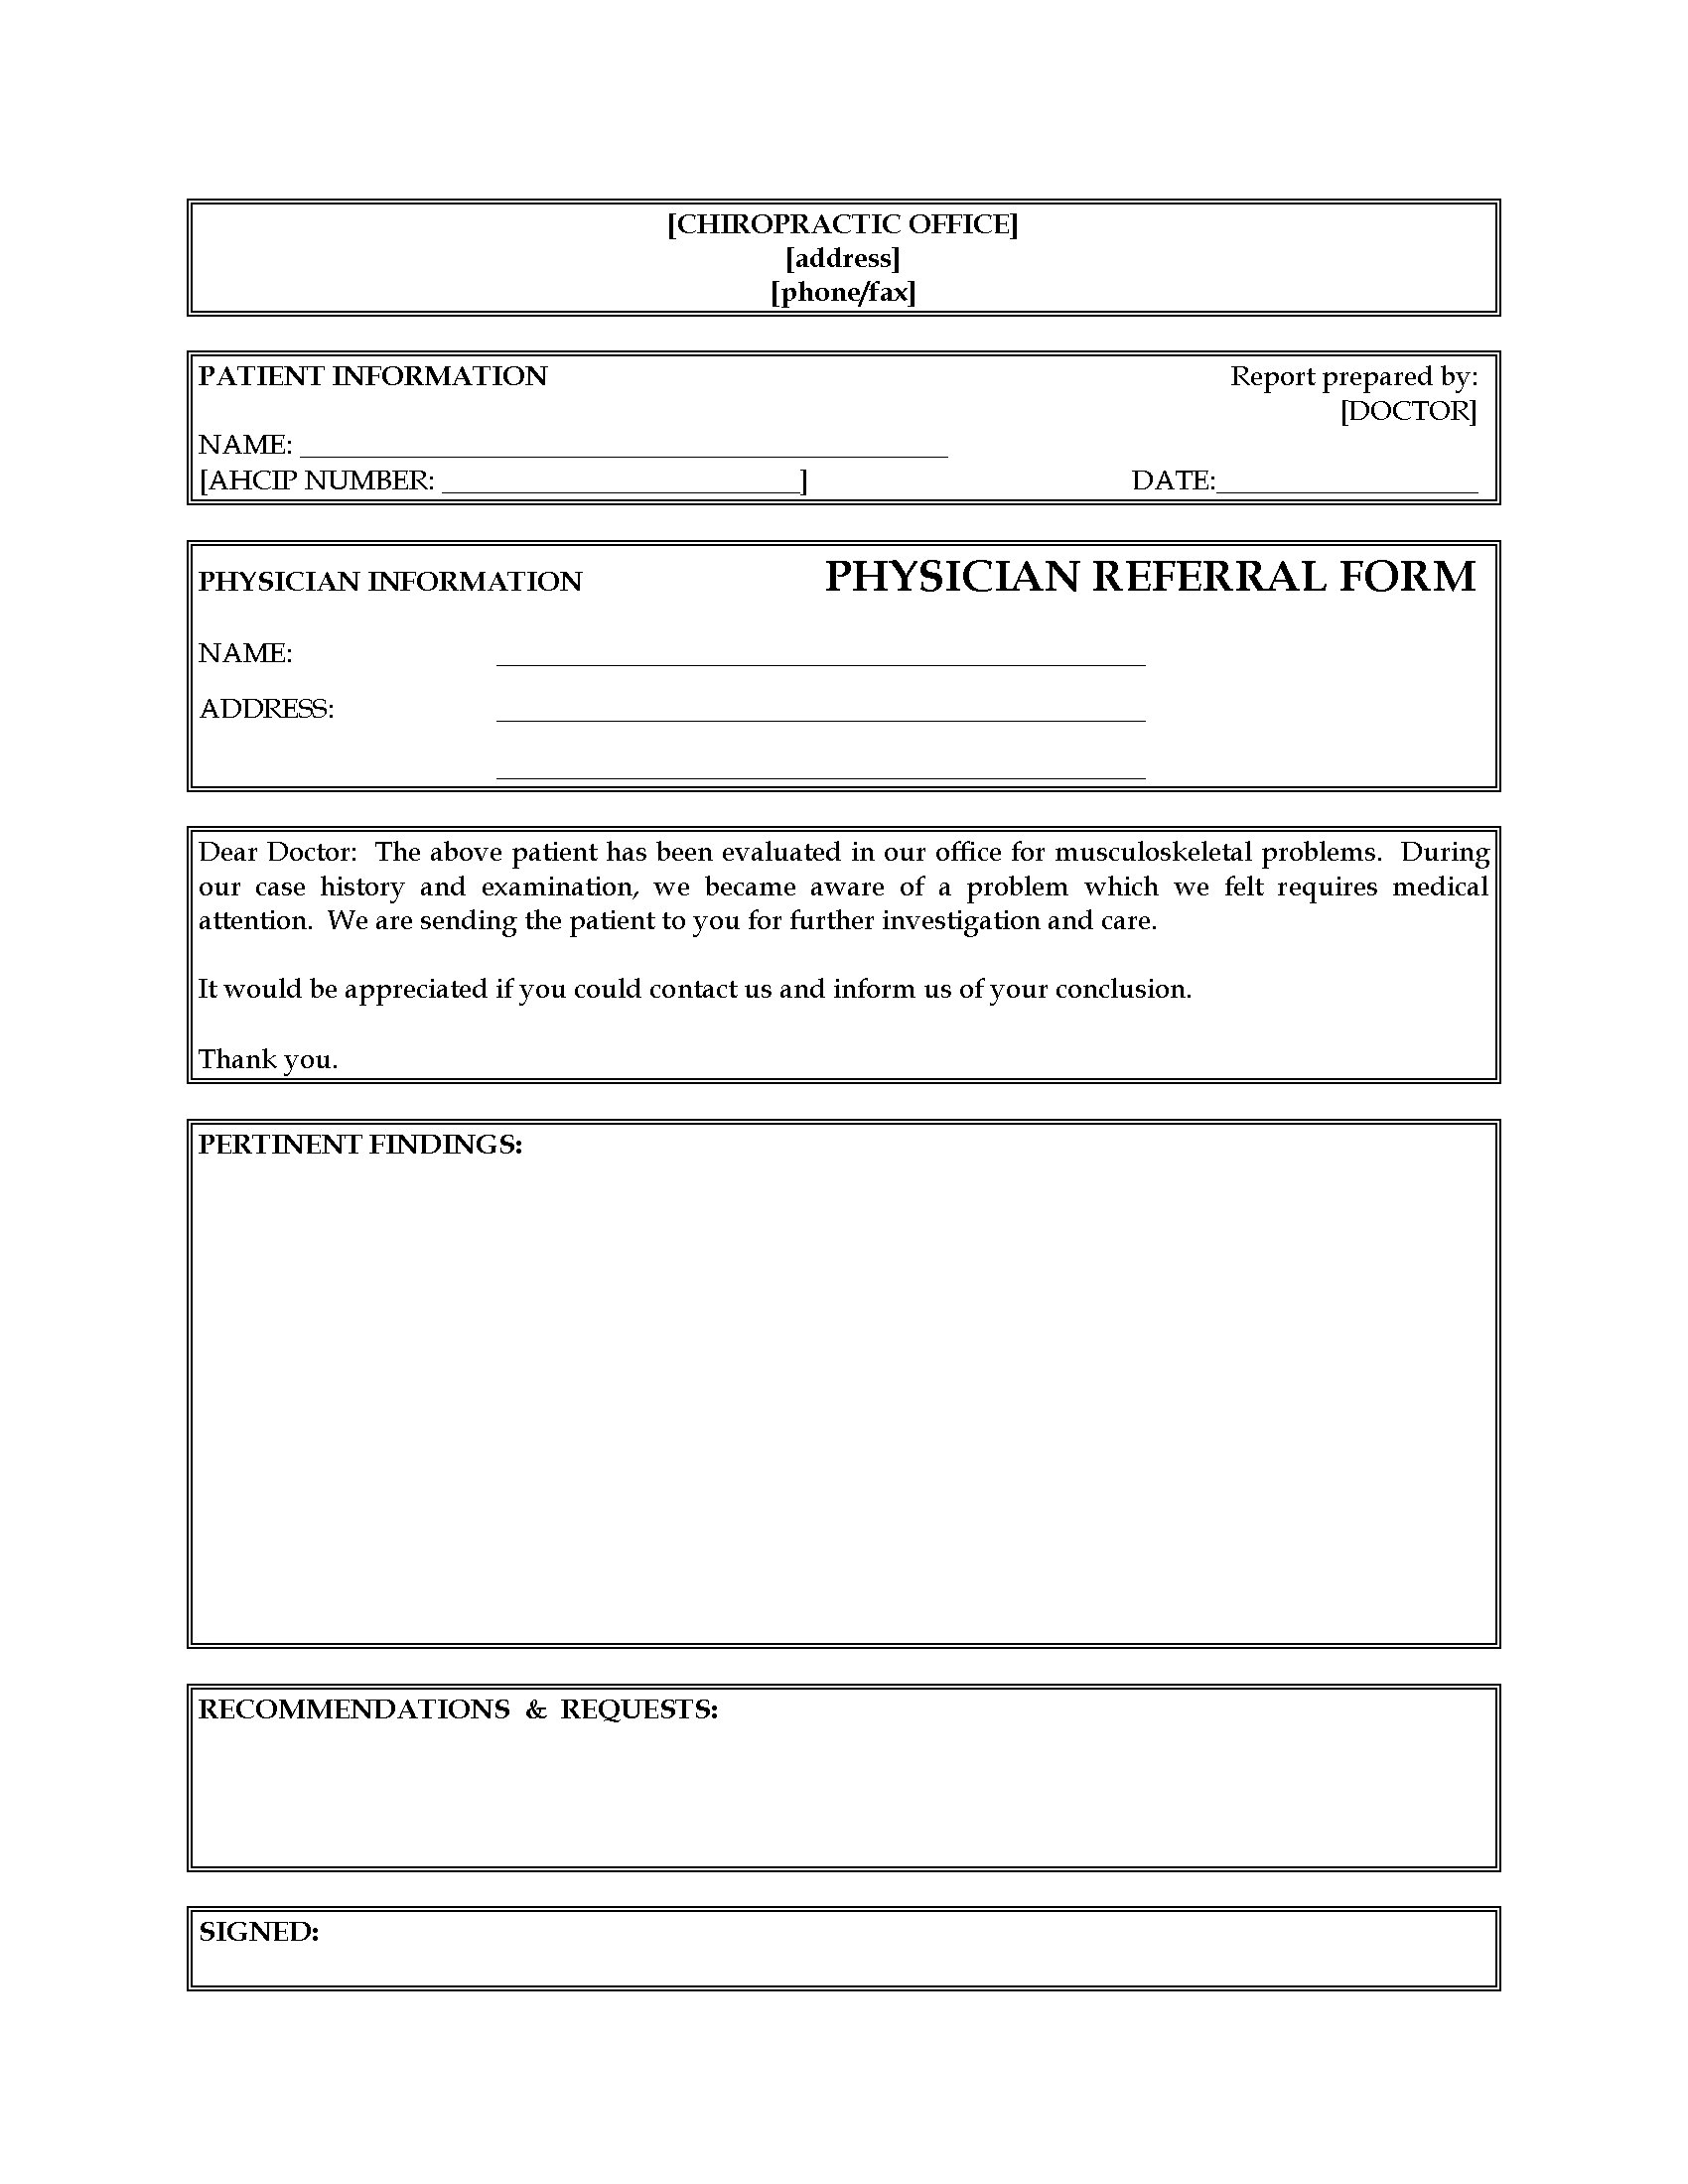 Doctor Referral Form Template Free